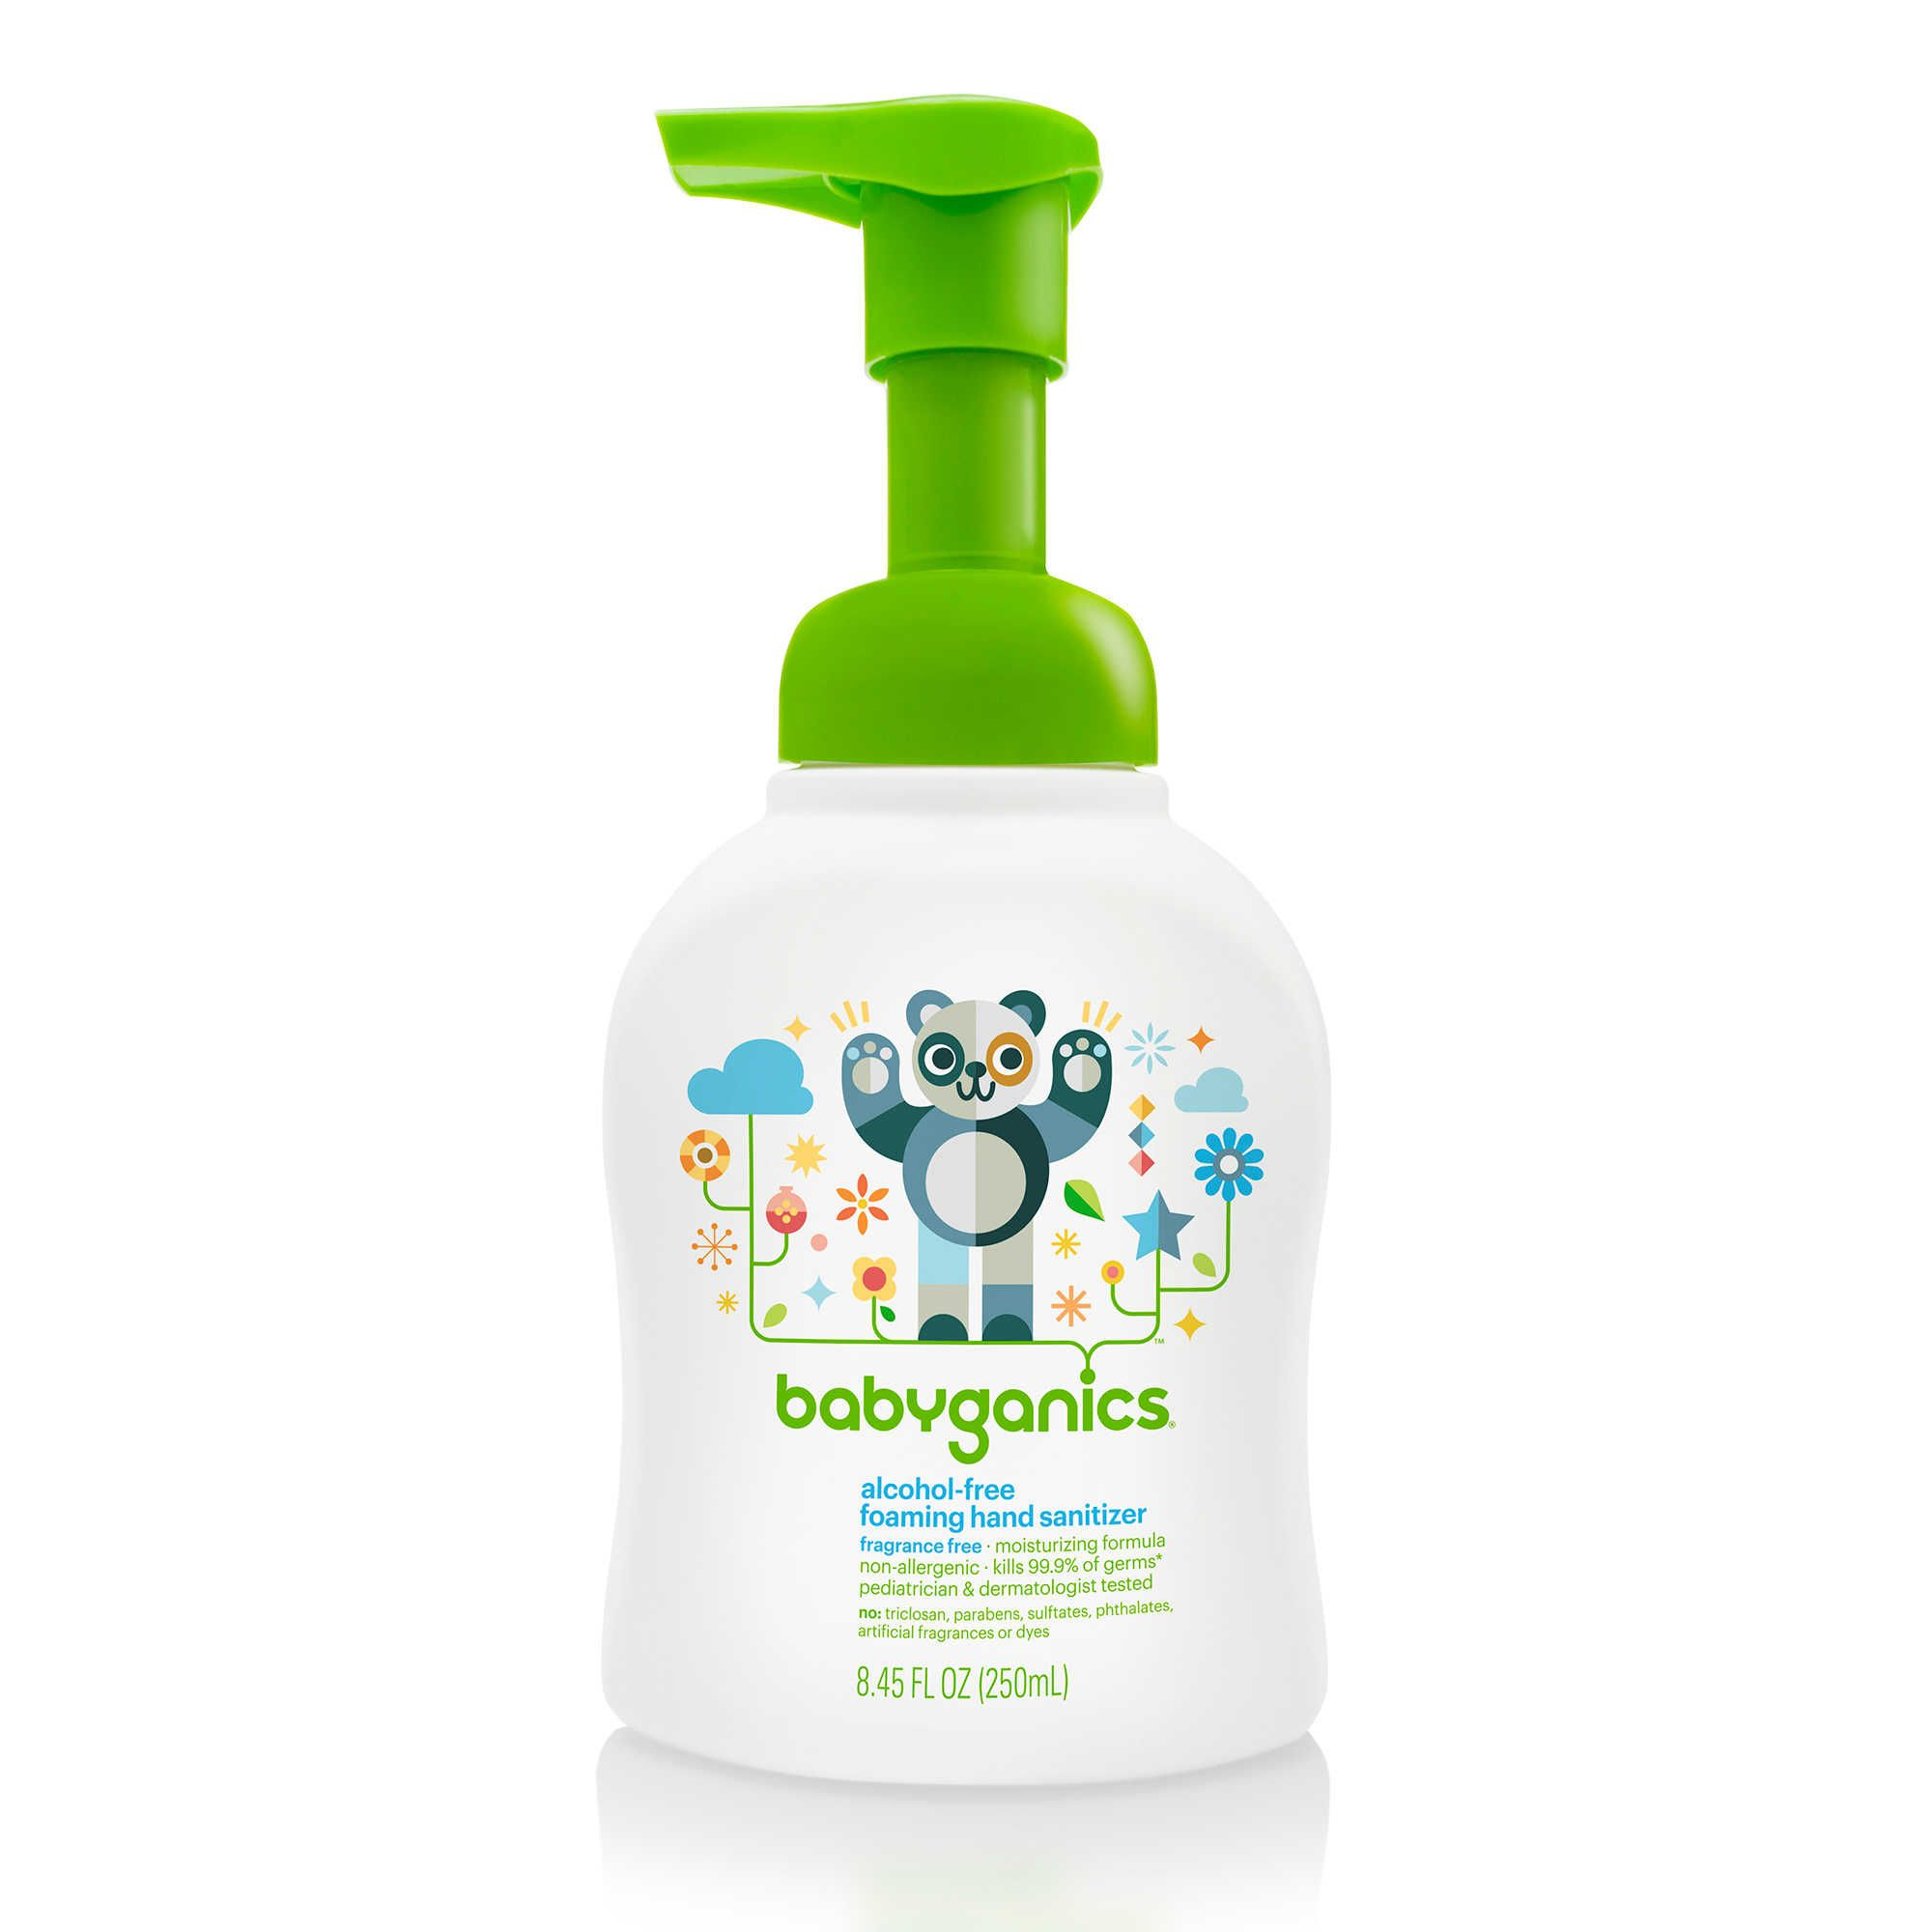 Babyganics 8 45 Oz Fragrance Free Alcohol Free Foaming Hand